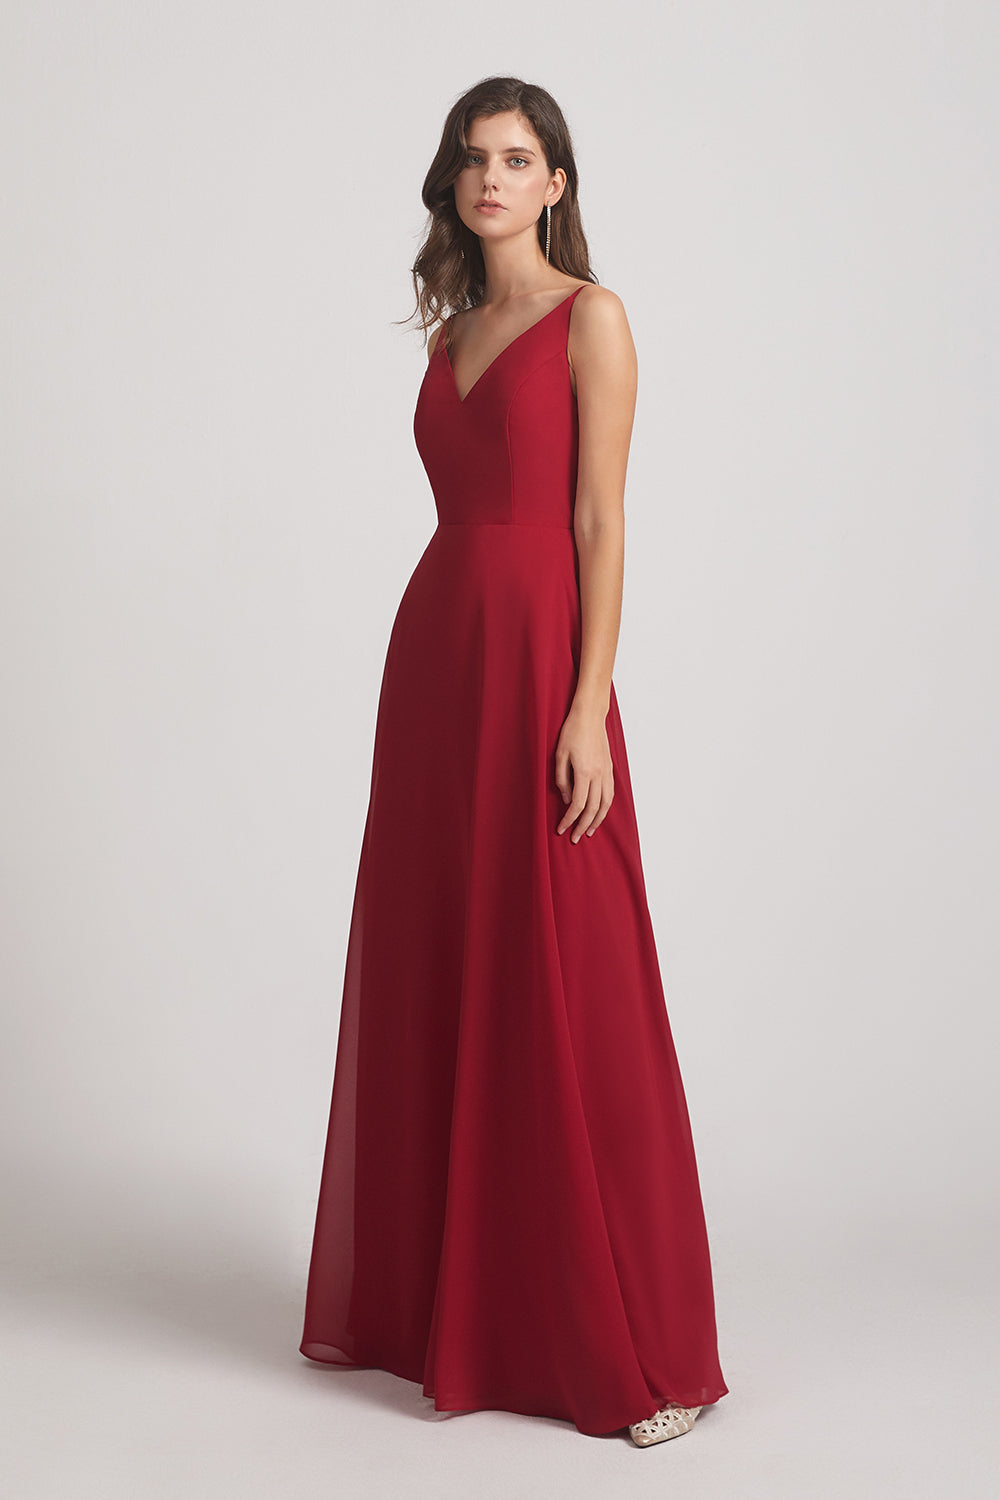 red long a-line maids of honor dresses